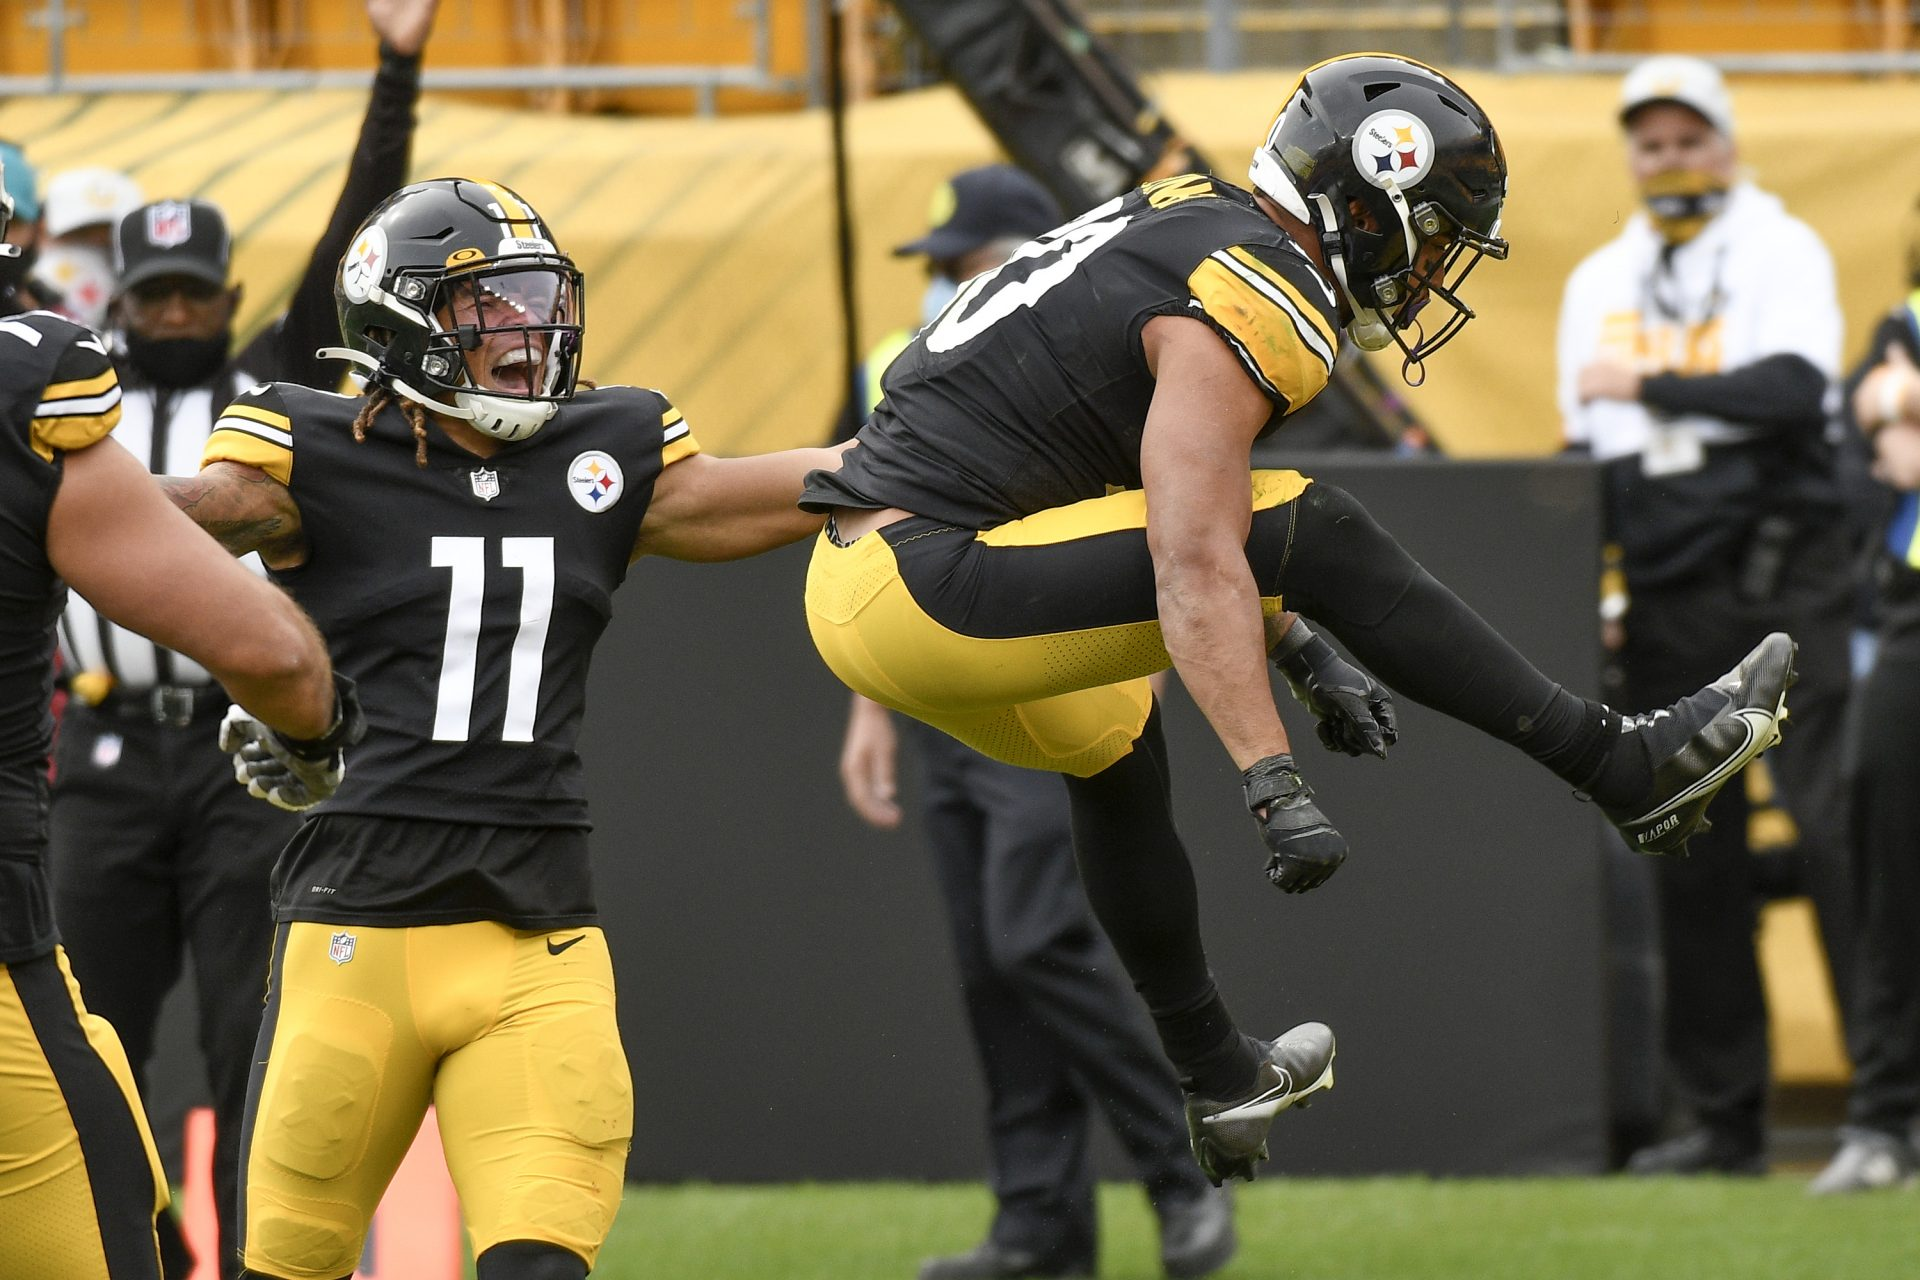 Pittsburgh Steelers running back James Conner (30) leaps after scoring a touchdown against the Cleveland Browns during the first half of an NFL football game, Sunday, Oct. 18, 2020, in Pittsburgh. Steelers wide receiver Chase Claypool (11) also reacts.